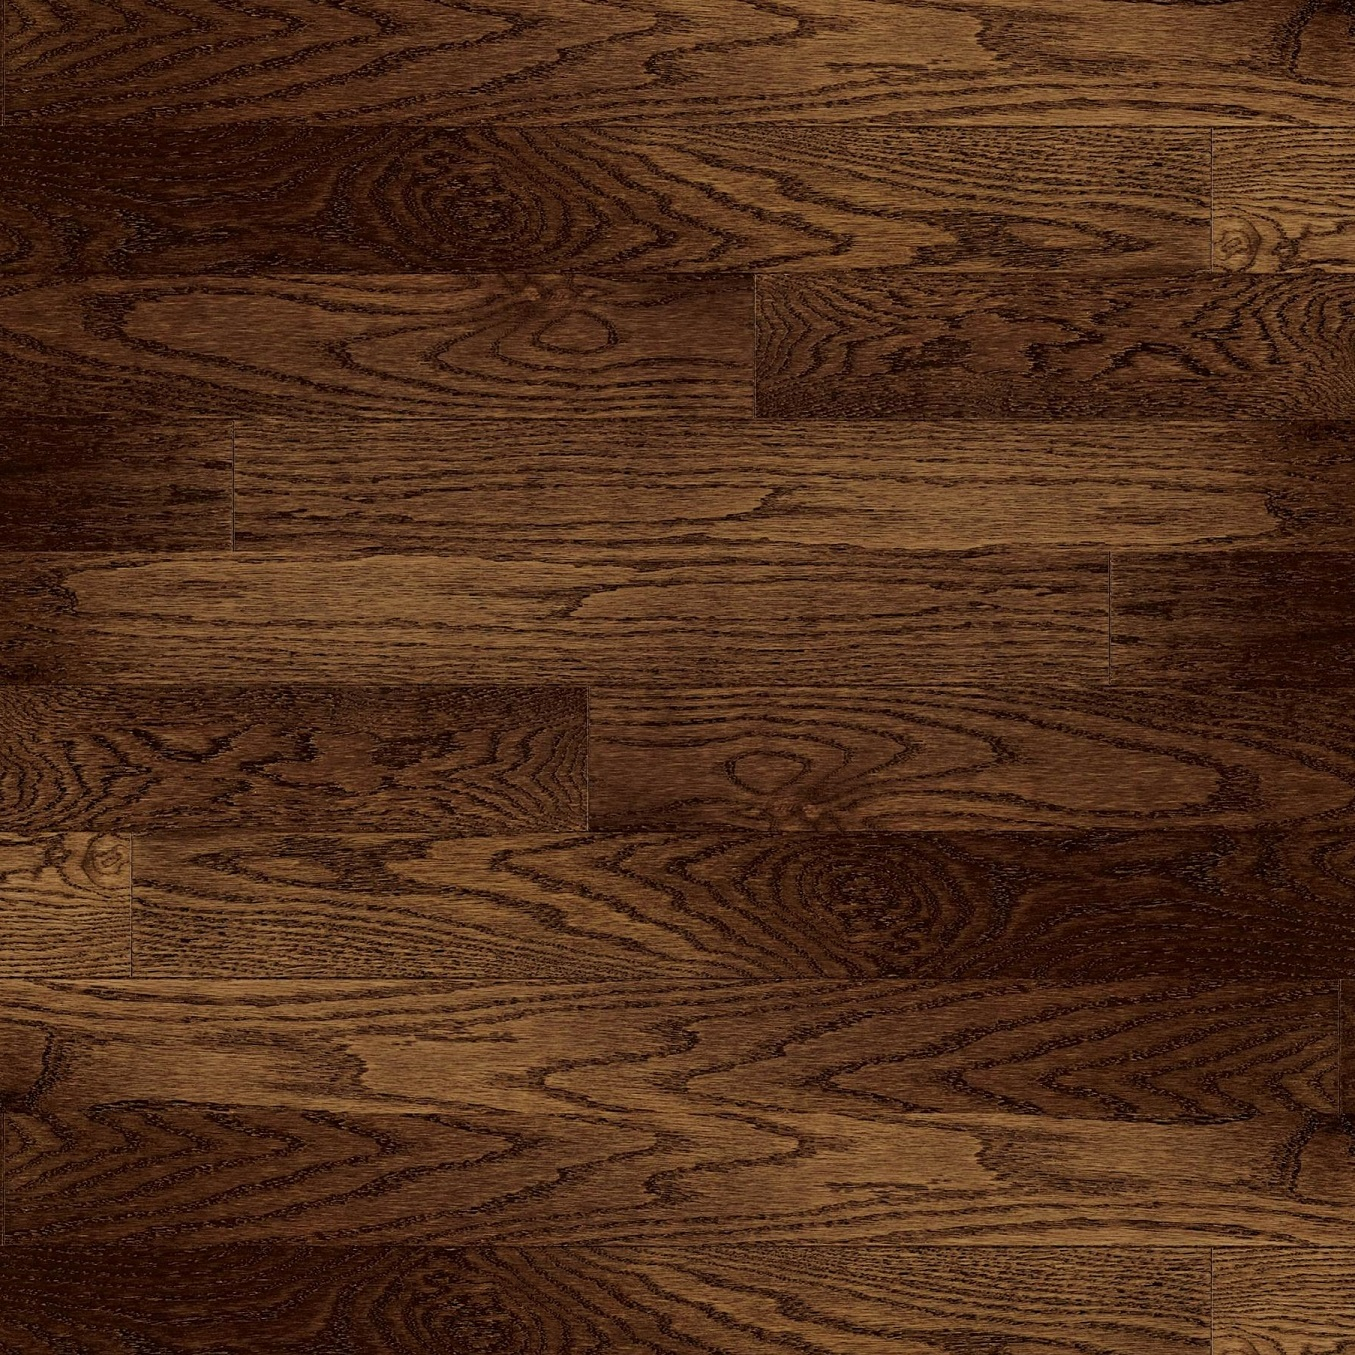 Lauzon Memoire Antique Cigarillo Red Oak 3 1 4 Quot Hardwood